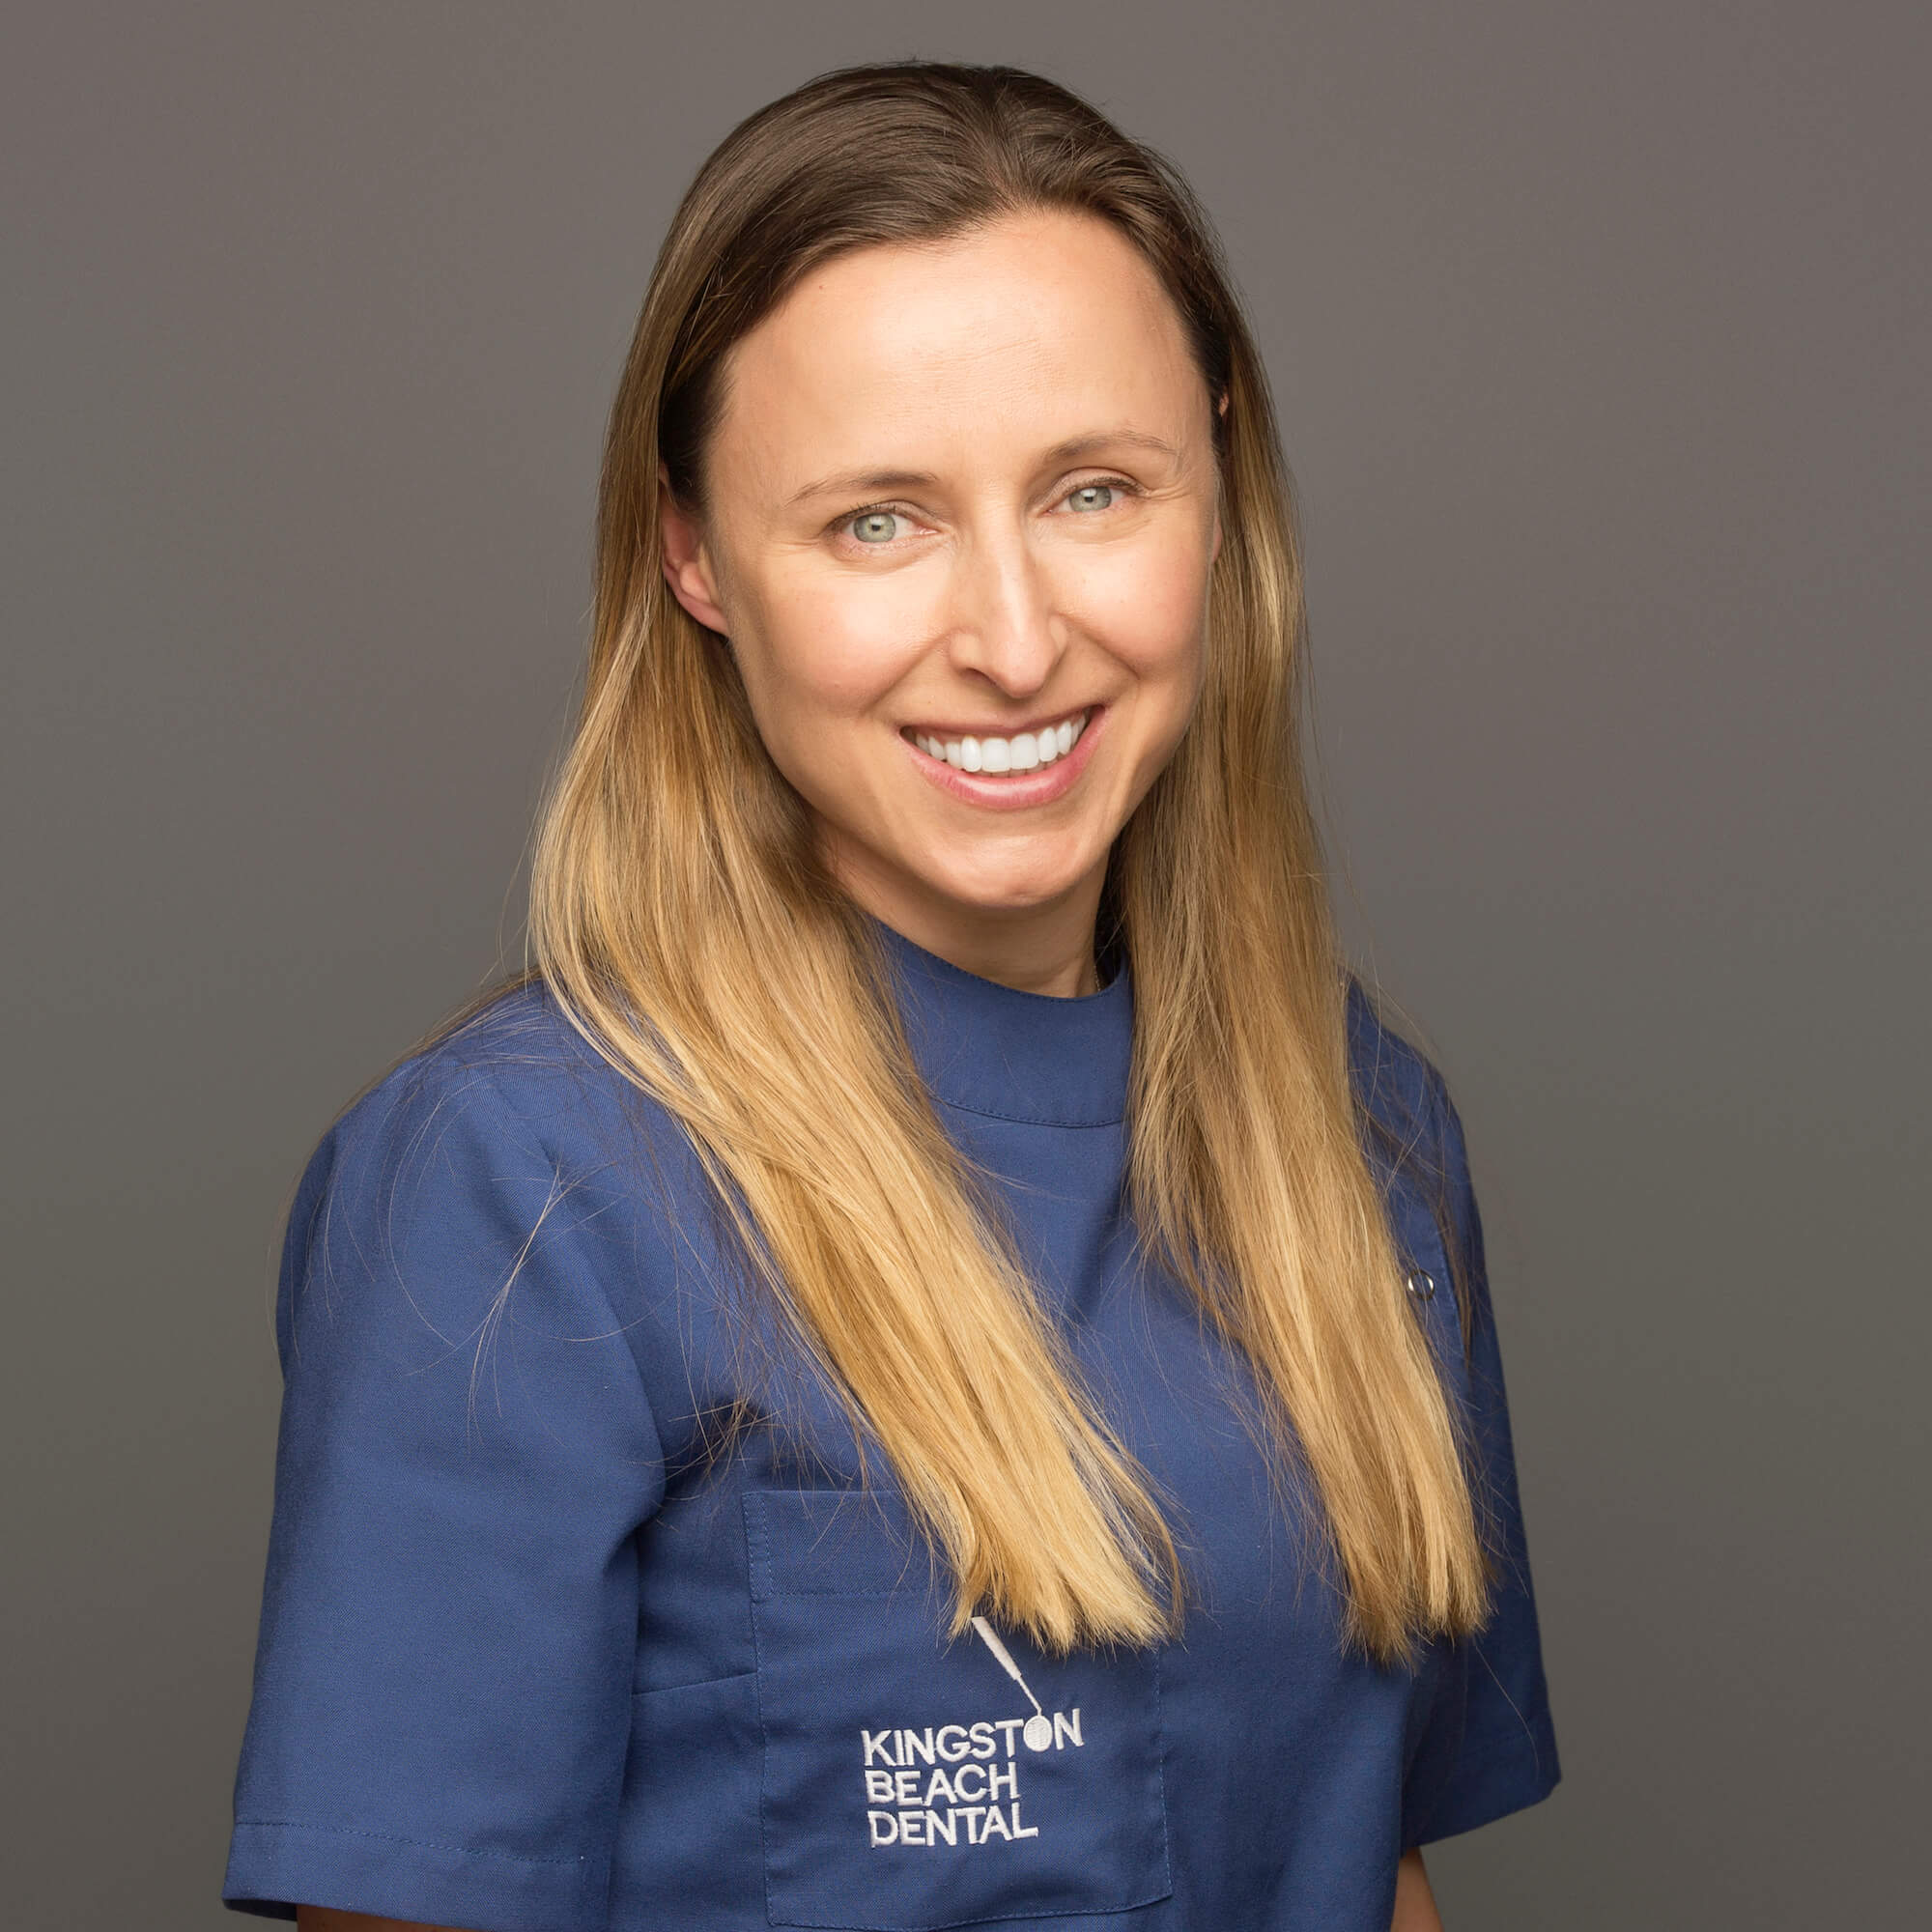 Kingston Beach Dental- Emma Grubb